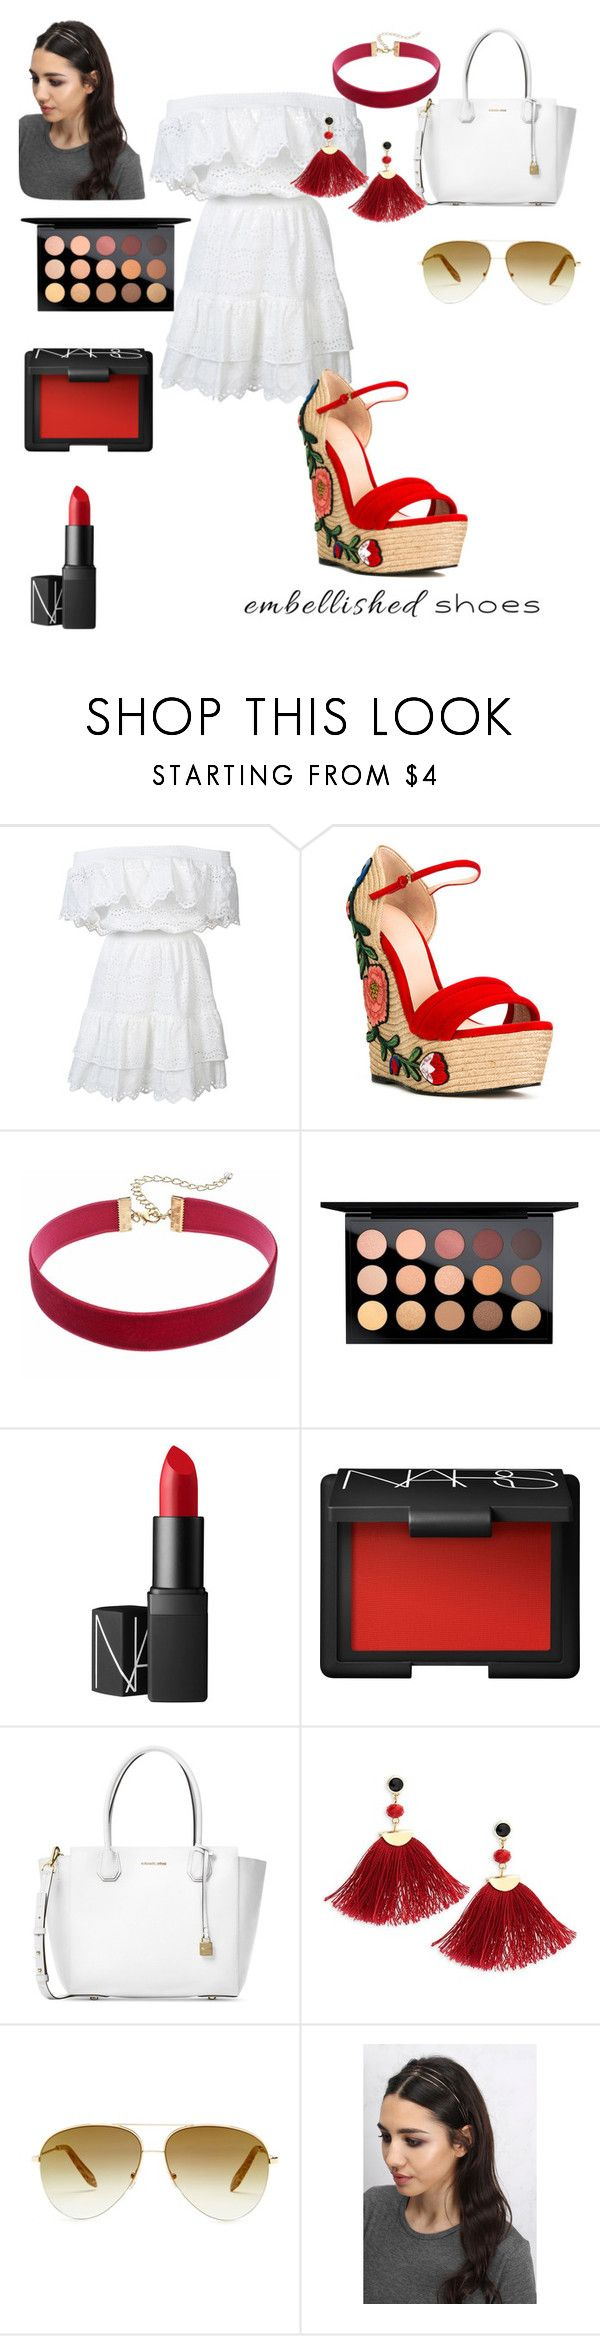 """♦️"" by lizmontgomery on Polyvore featuring LoveShackFancy, Gucci, MAC Cosmetics, NARS Cosmetics, Michael Kors, Shashi, Victoria Beckham and Rare London"